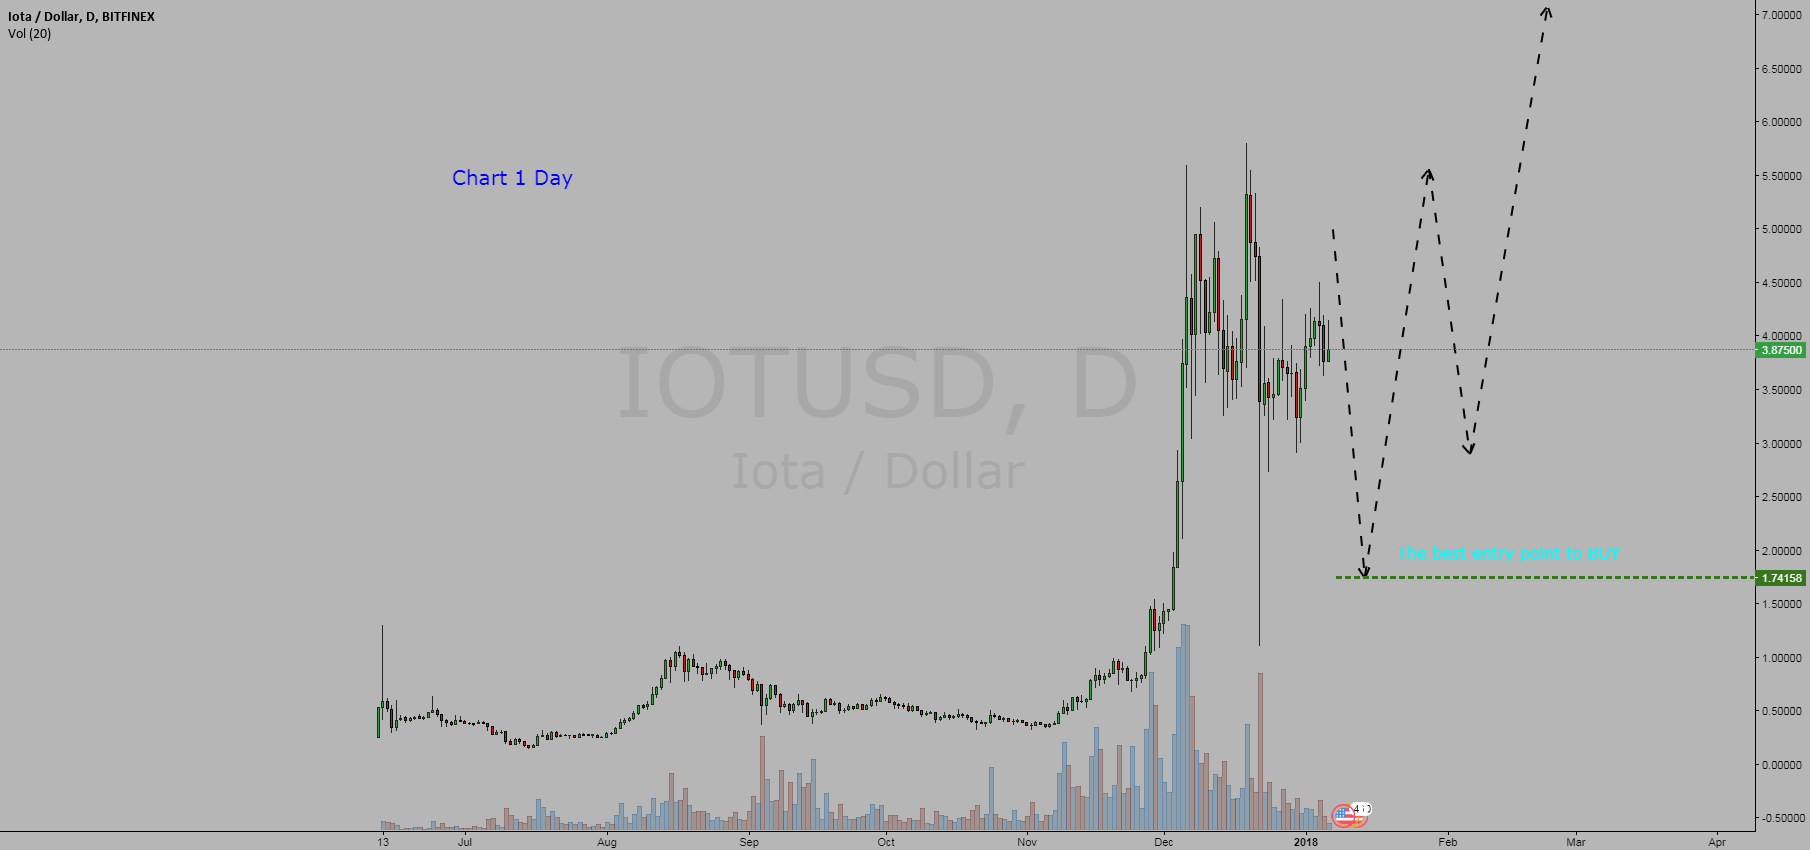 Cryptocurrency Iota / Dollar = BUY